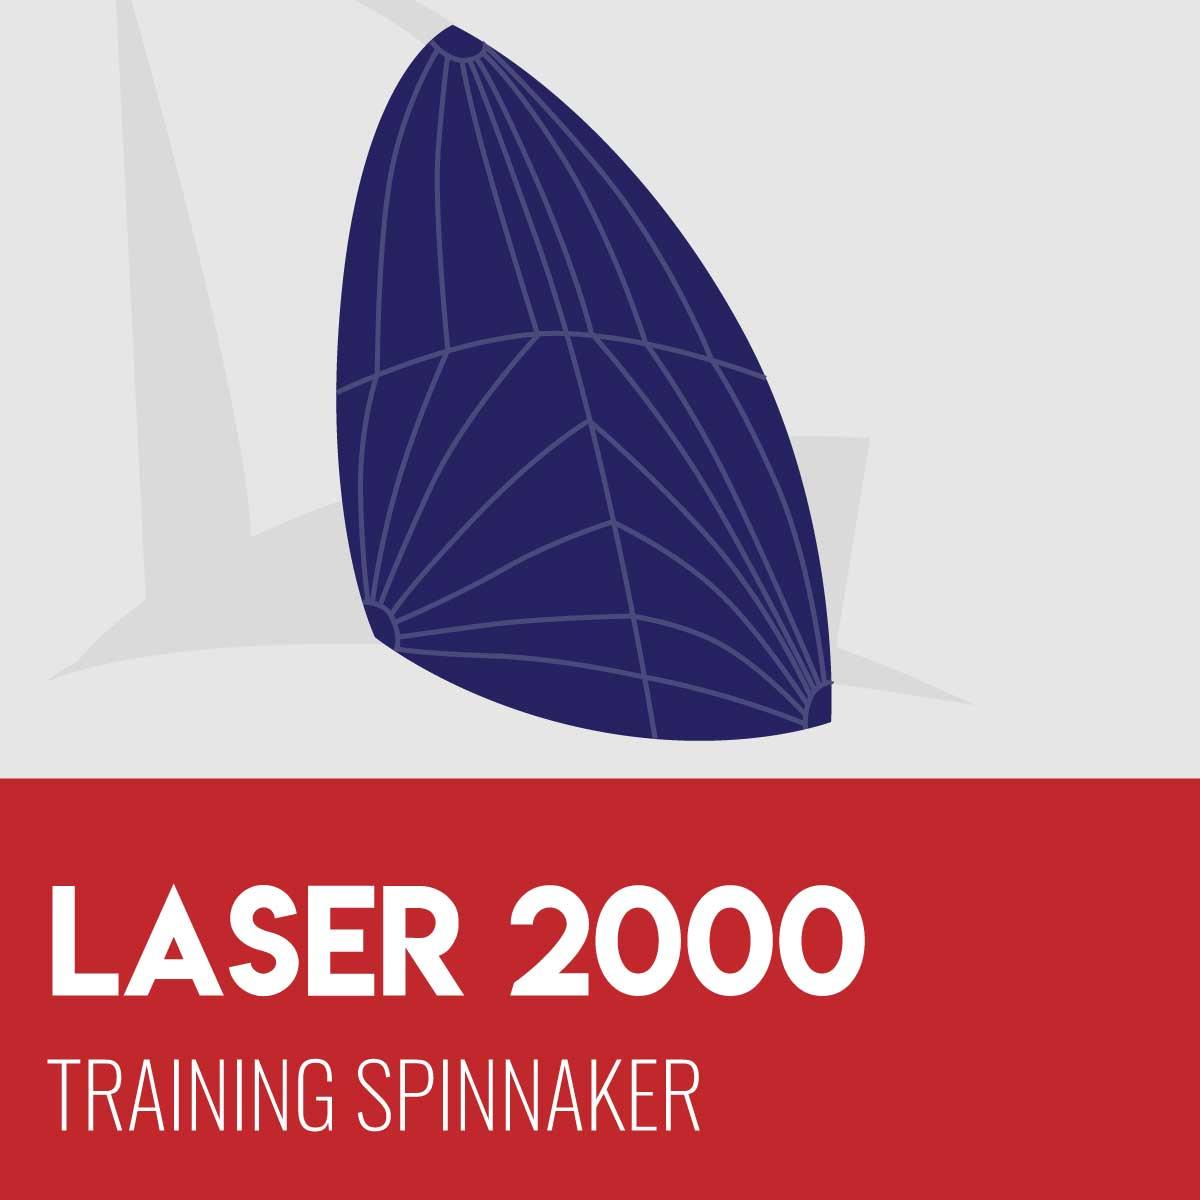 Laser 2000 Training Spinnaker